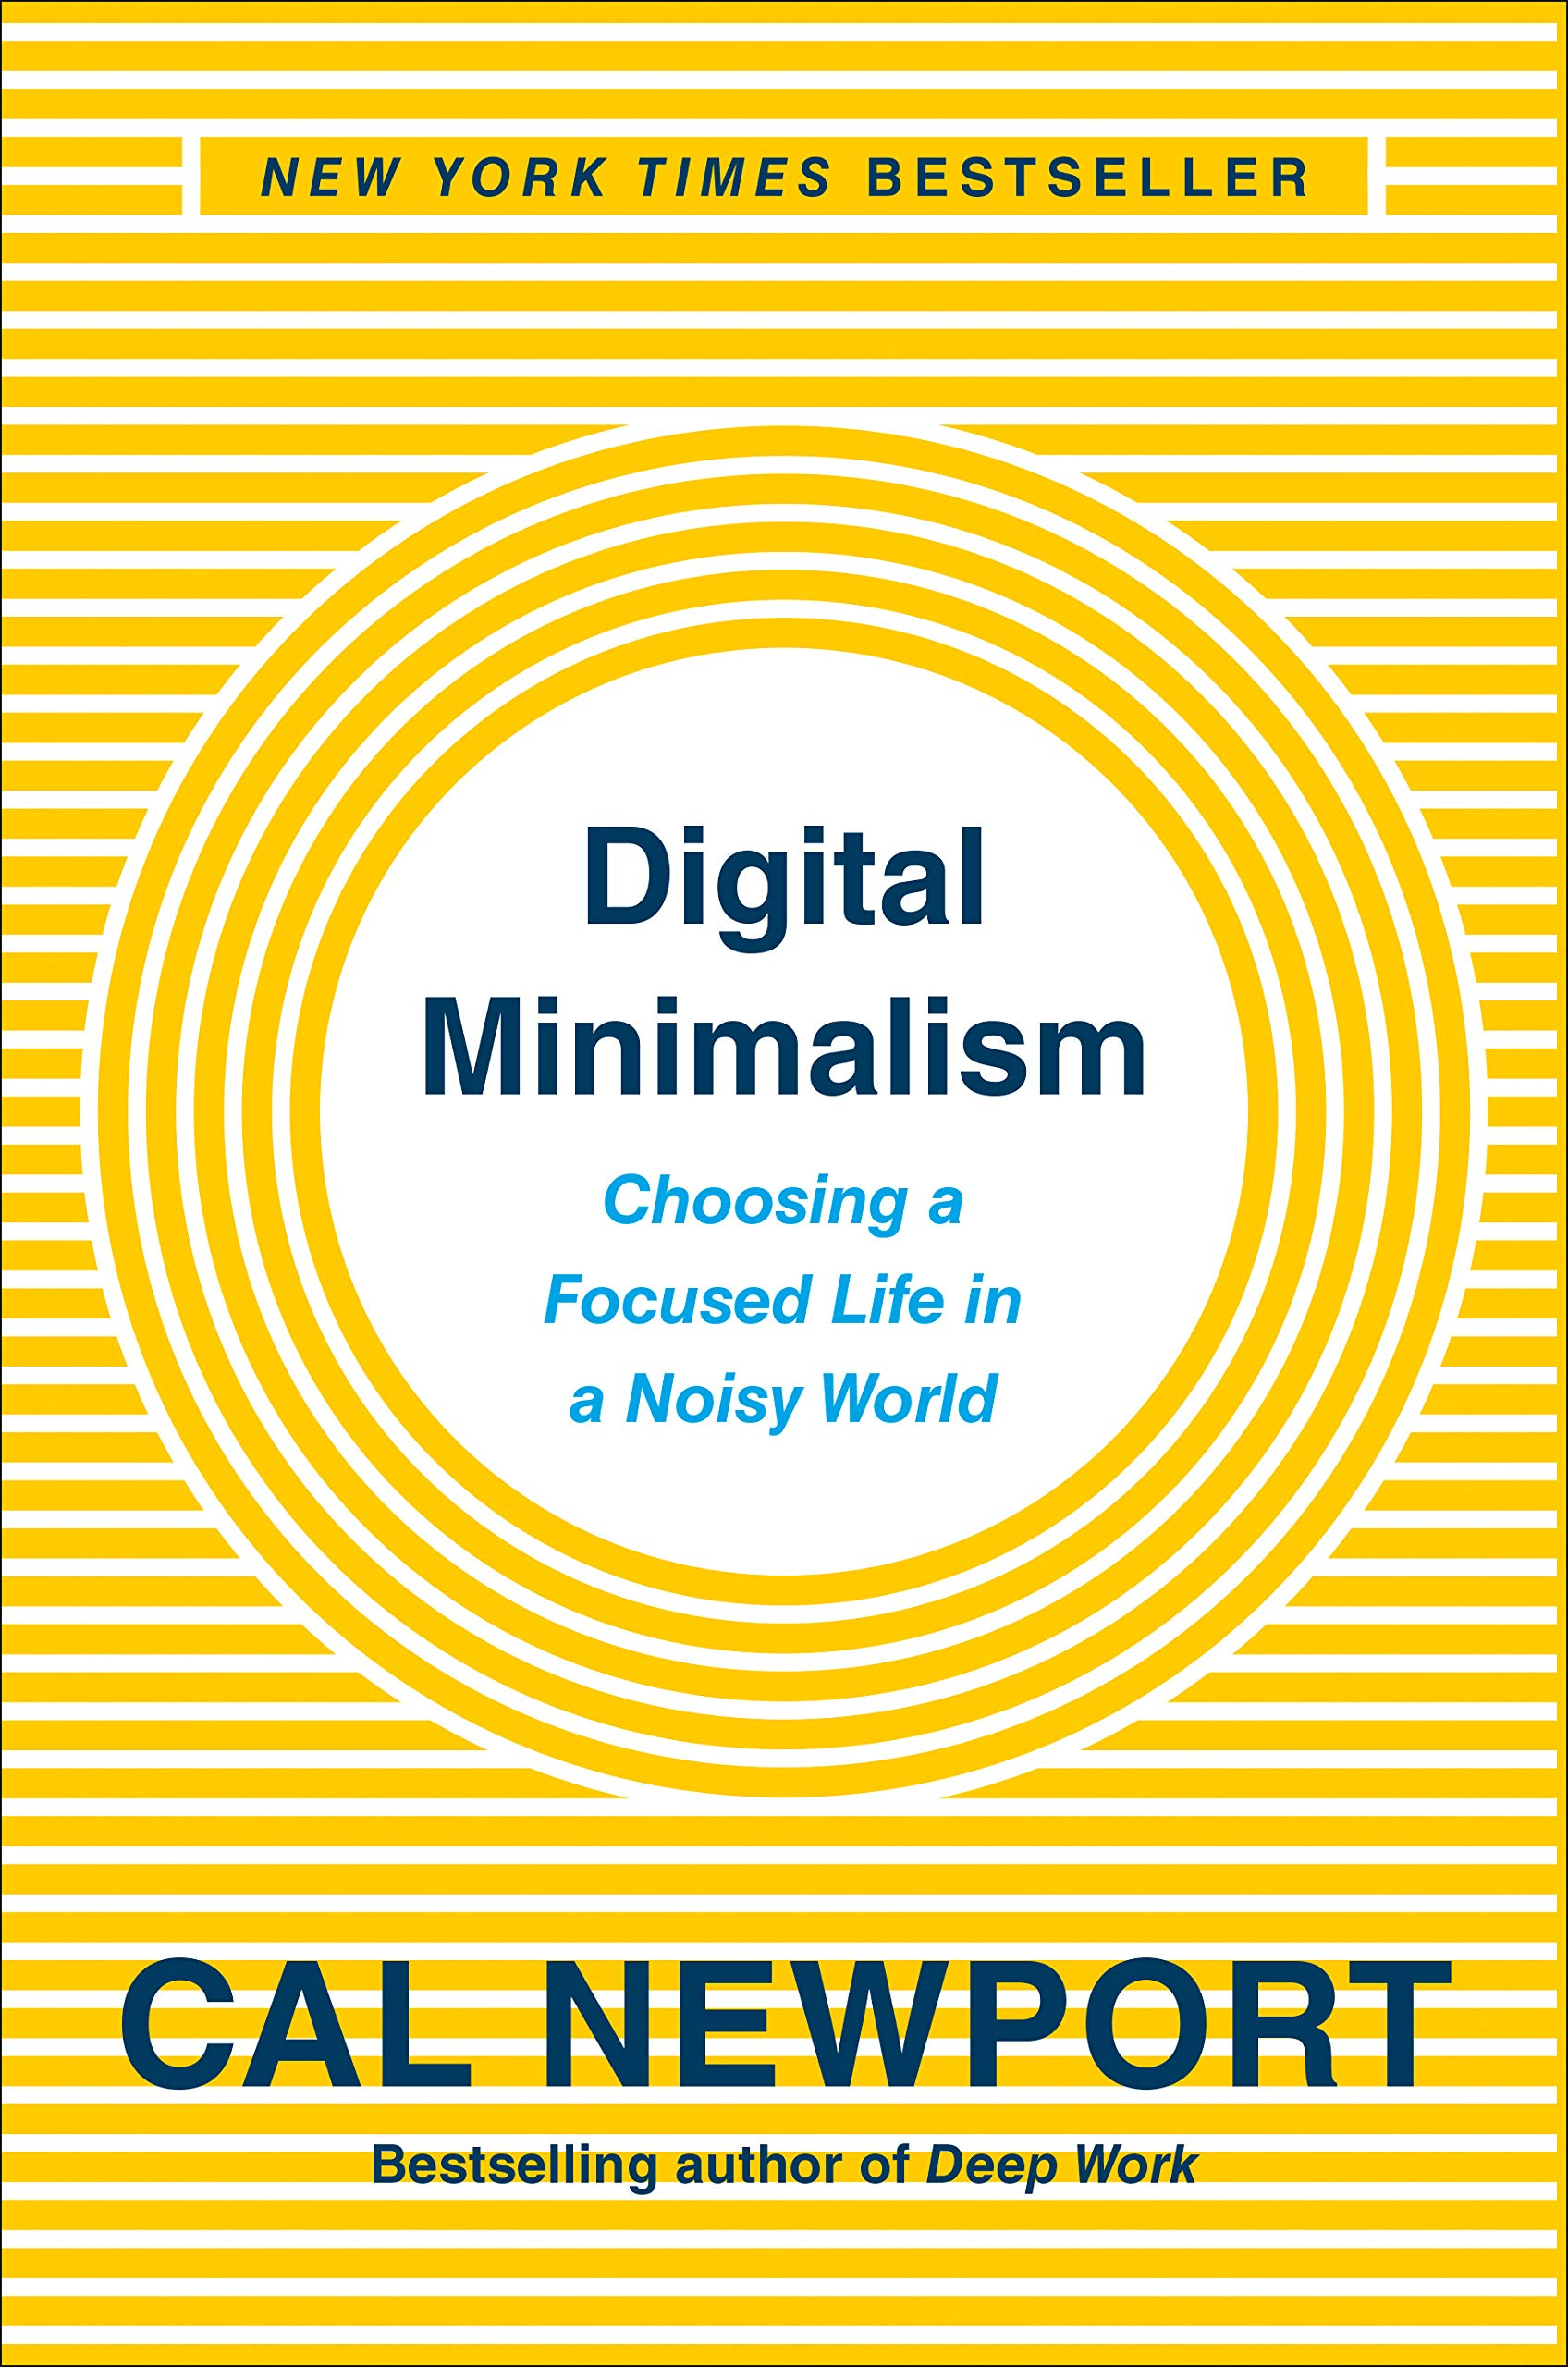 Amazon.com: Digital Minimalism: Choosing a Focused Life in a Noisy World  (9780525536512): Newport, Cal: Books